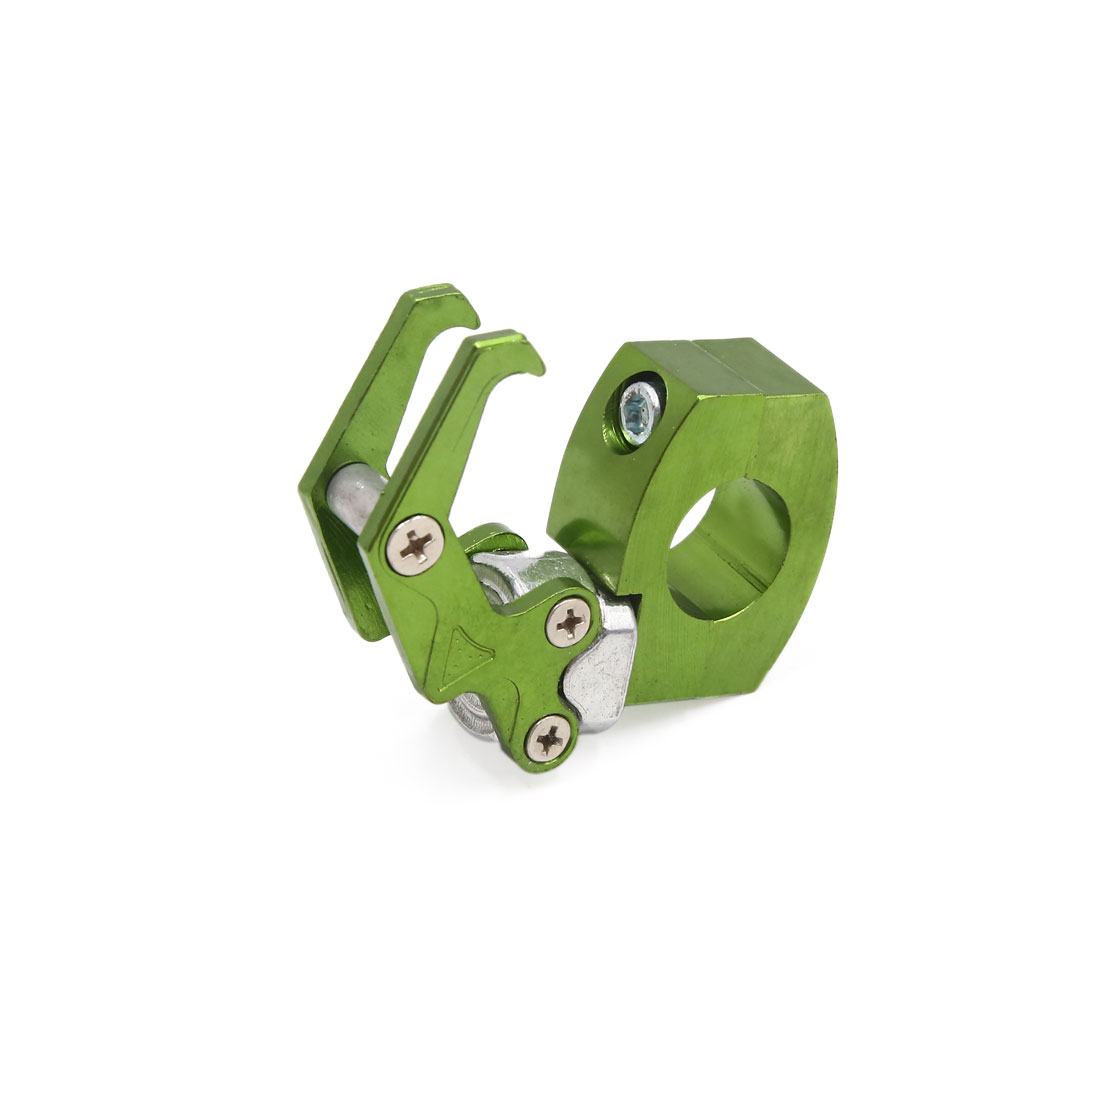 Green Eagle Claw Design Handlebar Mounting Luggage Hook for Motorcycle